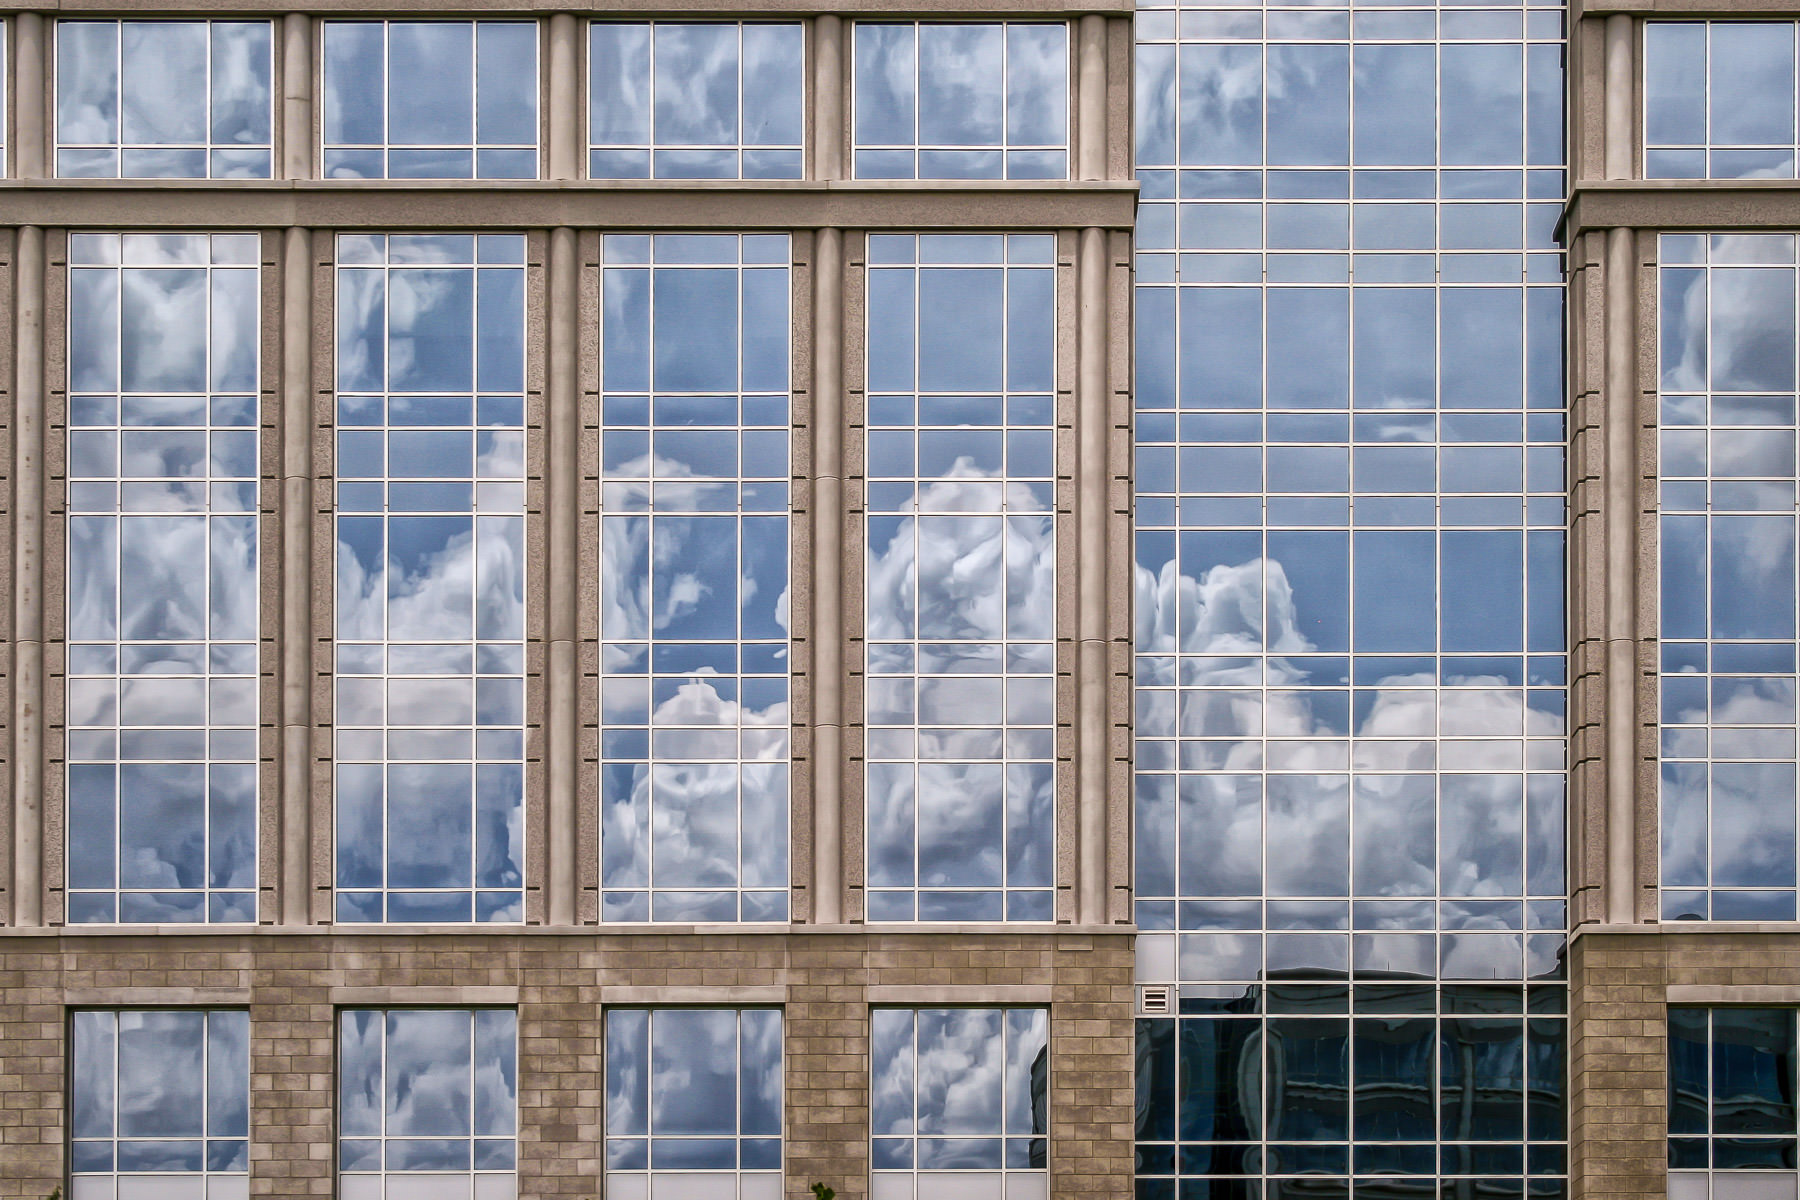 Clouds reflected in the windows of an office building in Frisco, Texas.